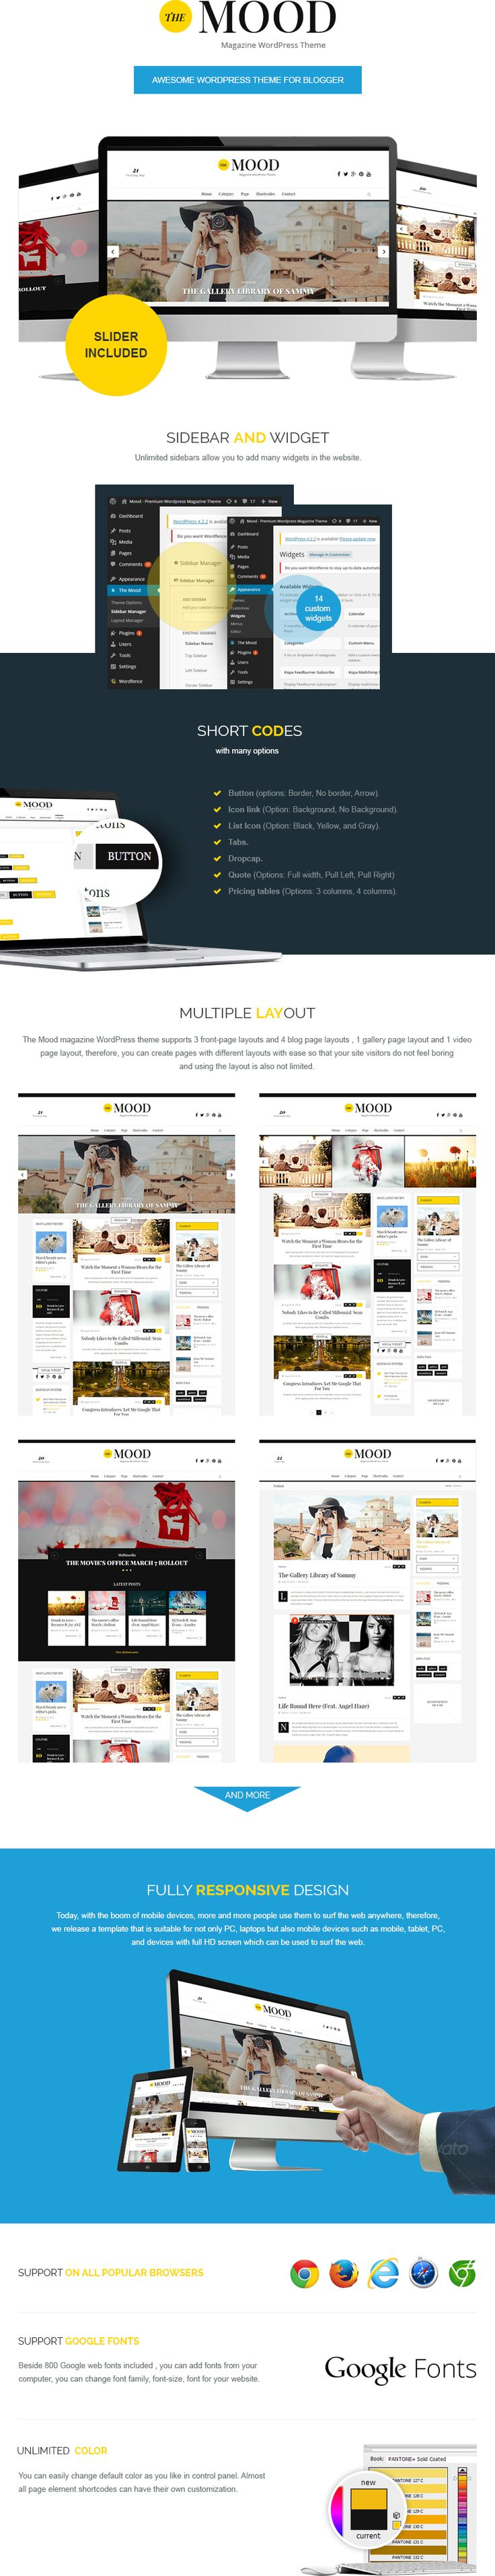 the mood WordPress theme